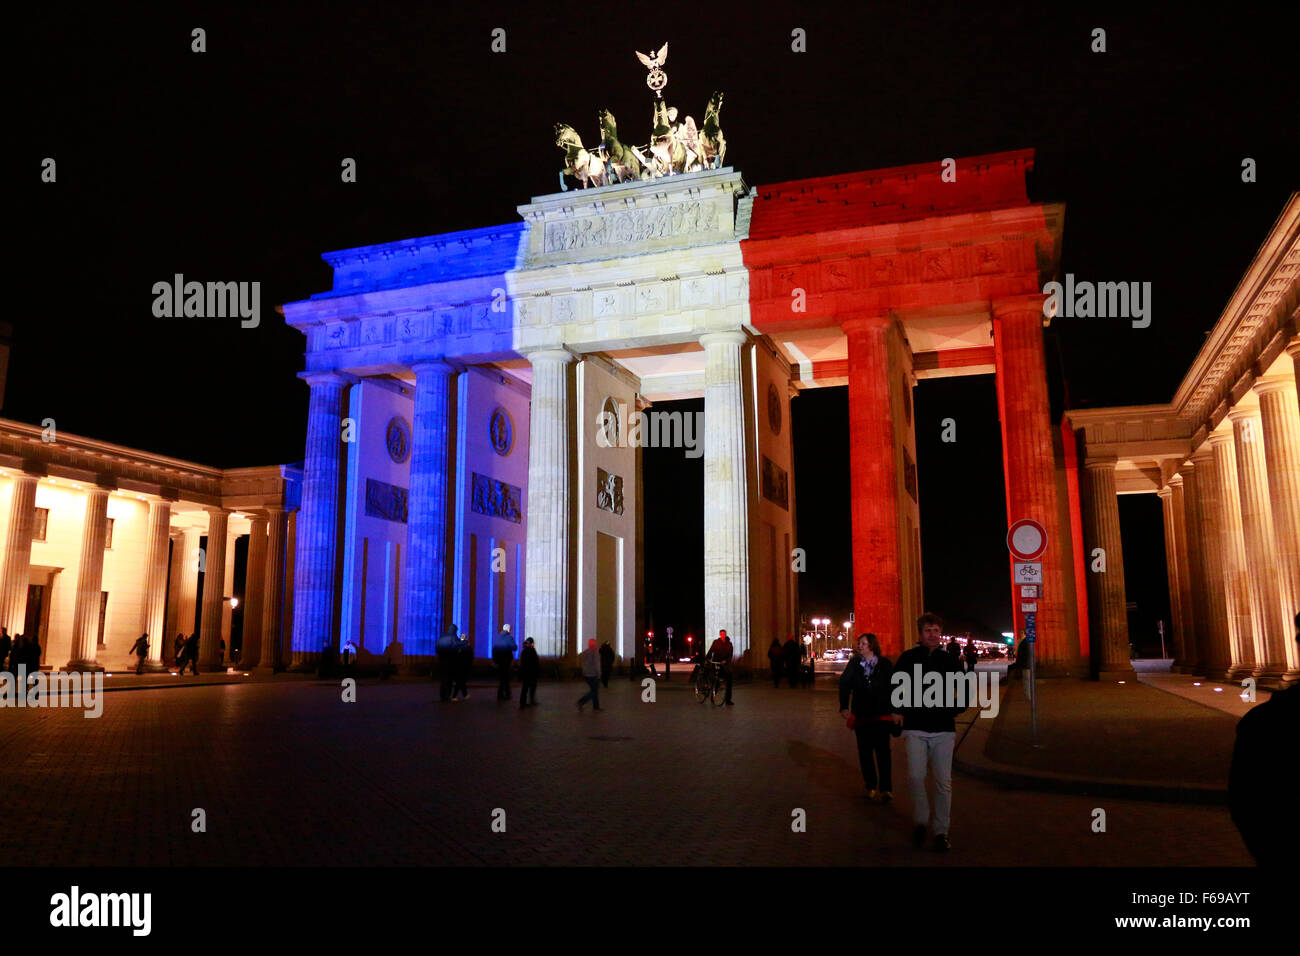 NOVEMBER 14, 2015 - BERLIN: the Brandenburg Gate in the colors of France -  mourning at the French Embassy in Berlin - Stock Image